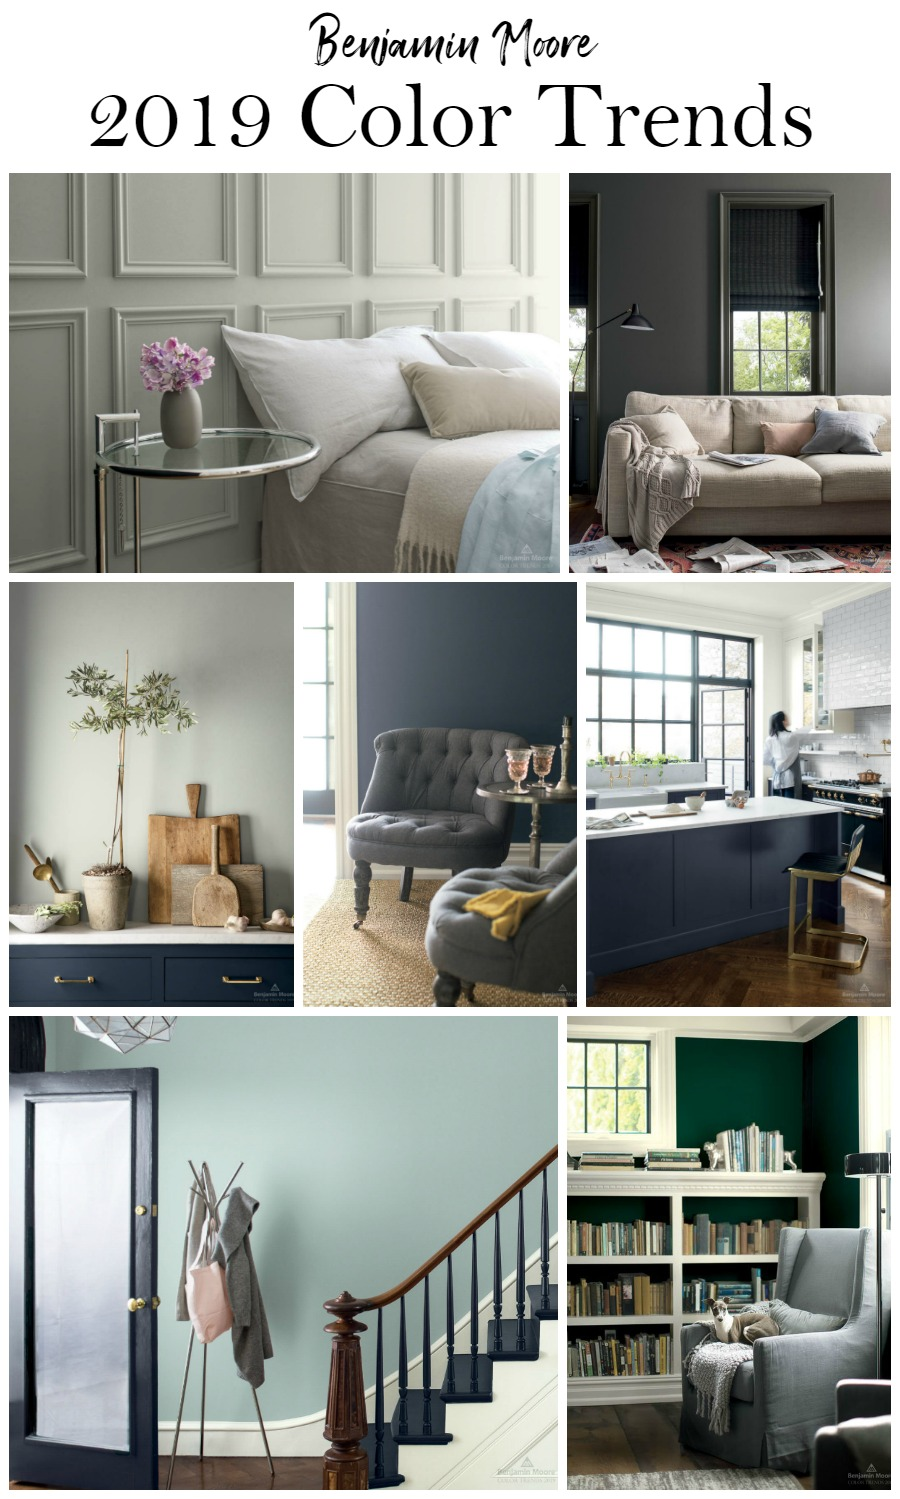 Benjamin Moore Paint Color Trends 2019 Postcards From The Ridge